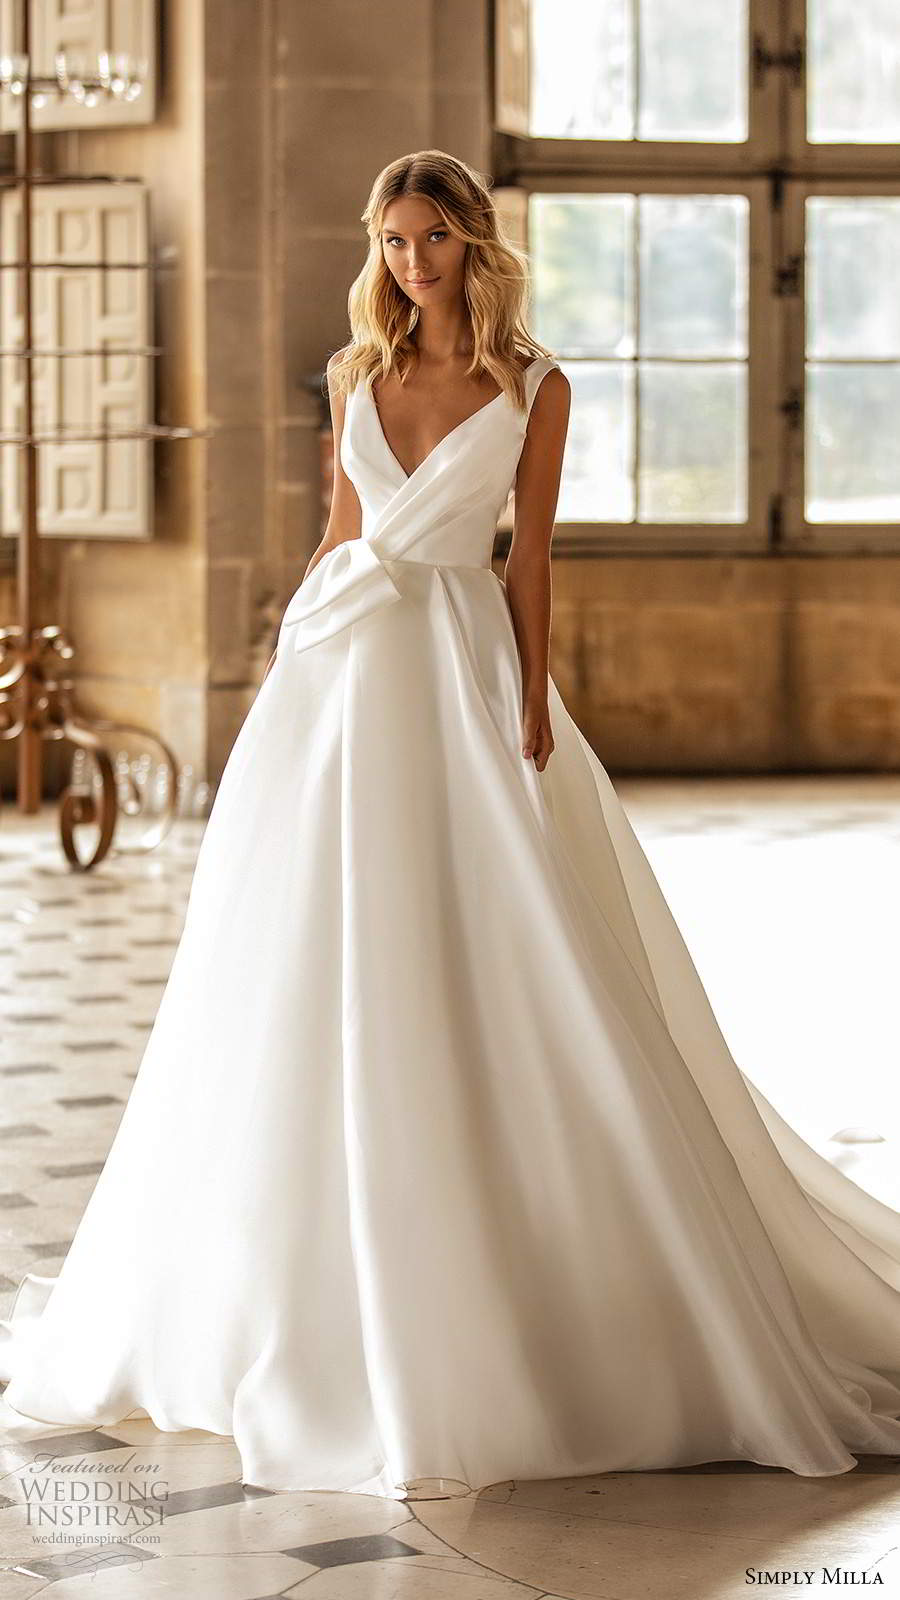 simply milla nova 2020 bridal sleeveless straps v surplice neckline clean minalist a line ball gown wedding dress cathedrea; train (11) mv